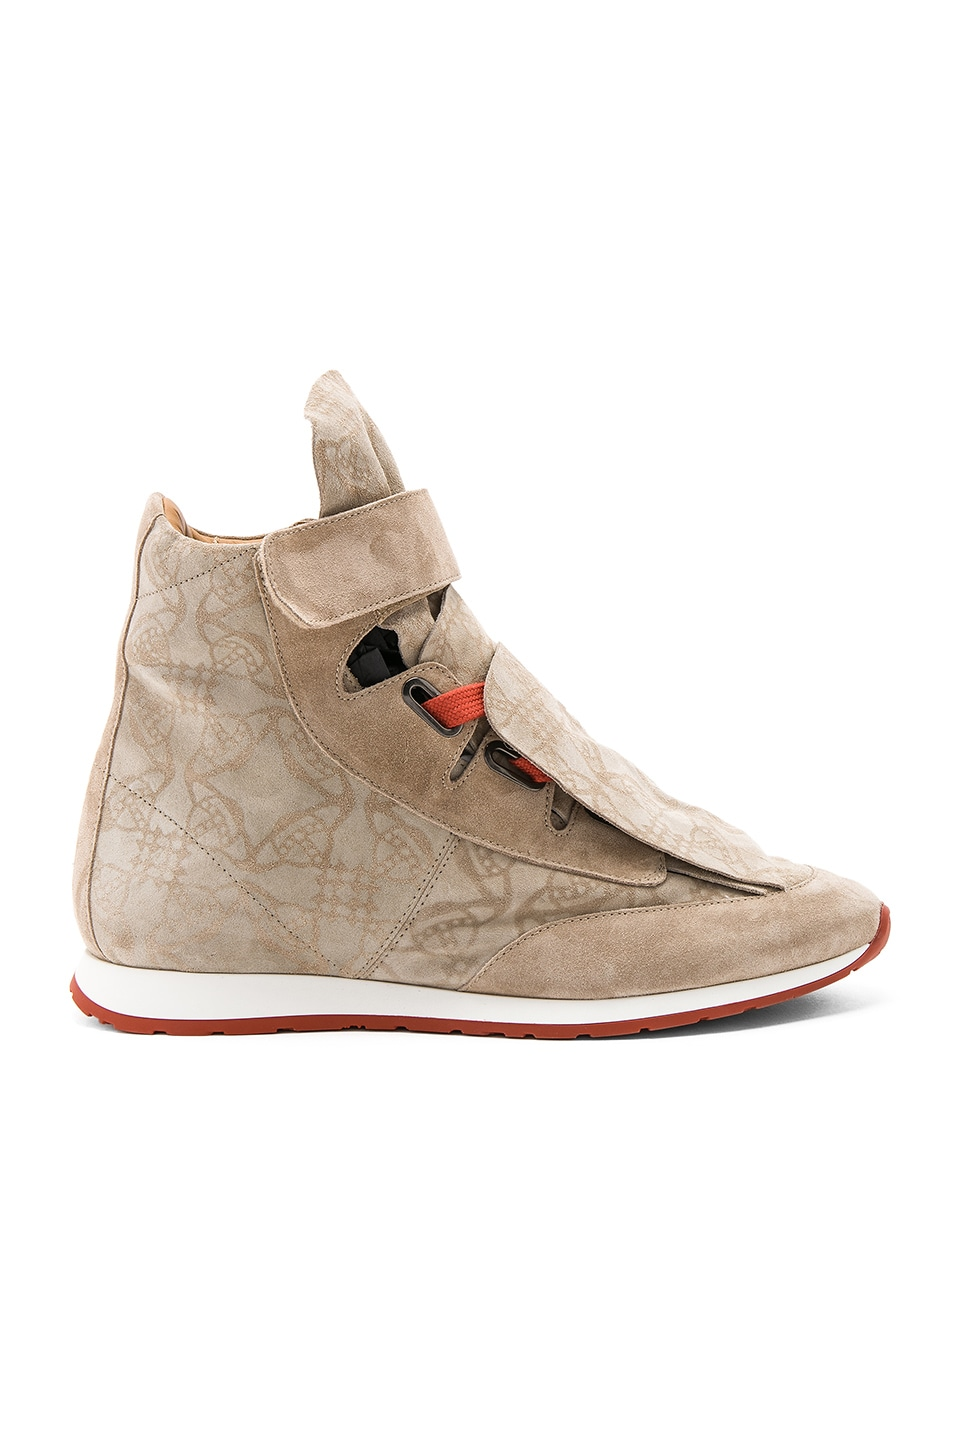 3 Tongue Trainers by Vivienne Westwood